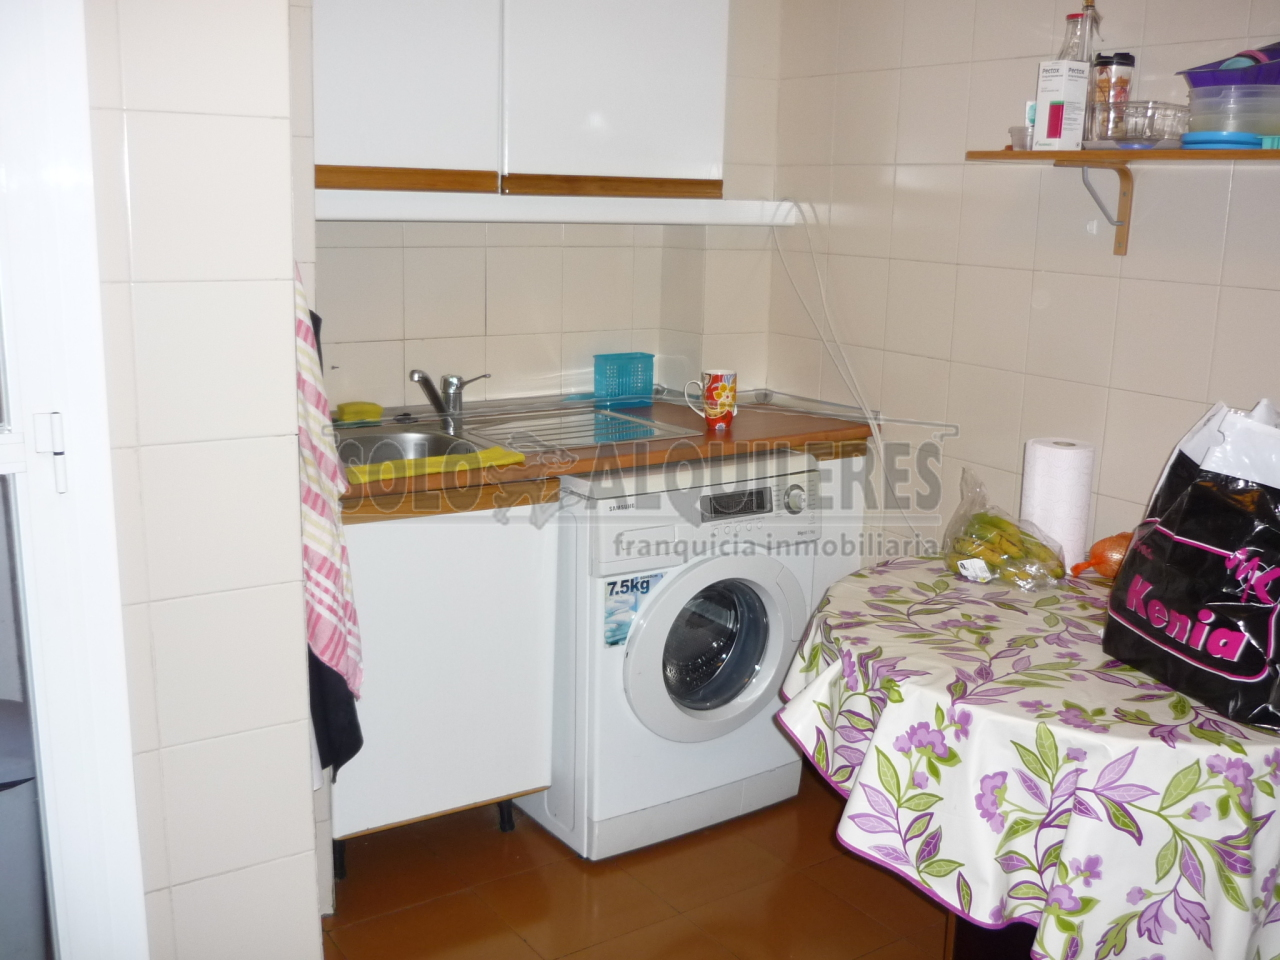 flat-for-rent-in-flor-de-lis-madrid